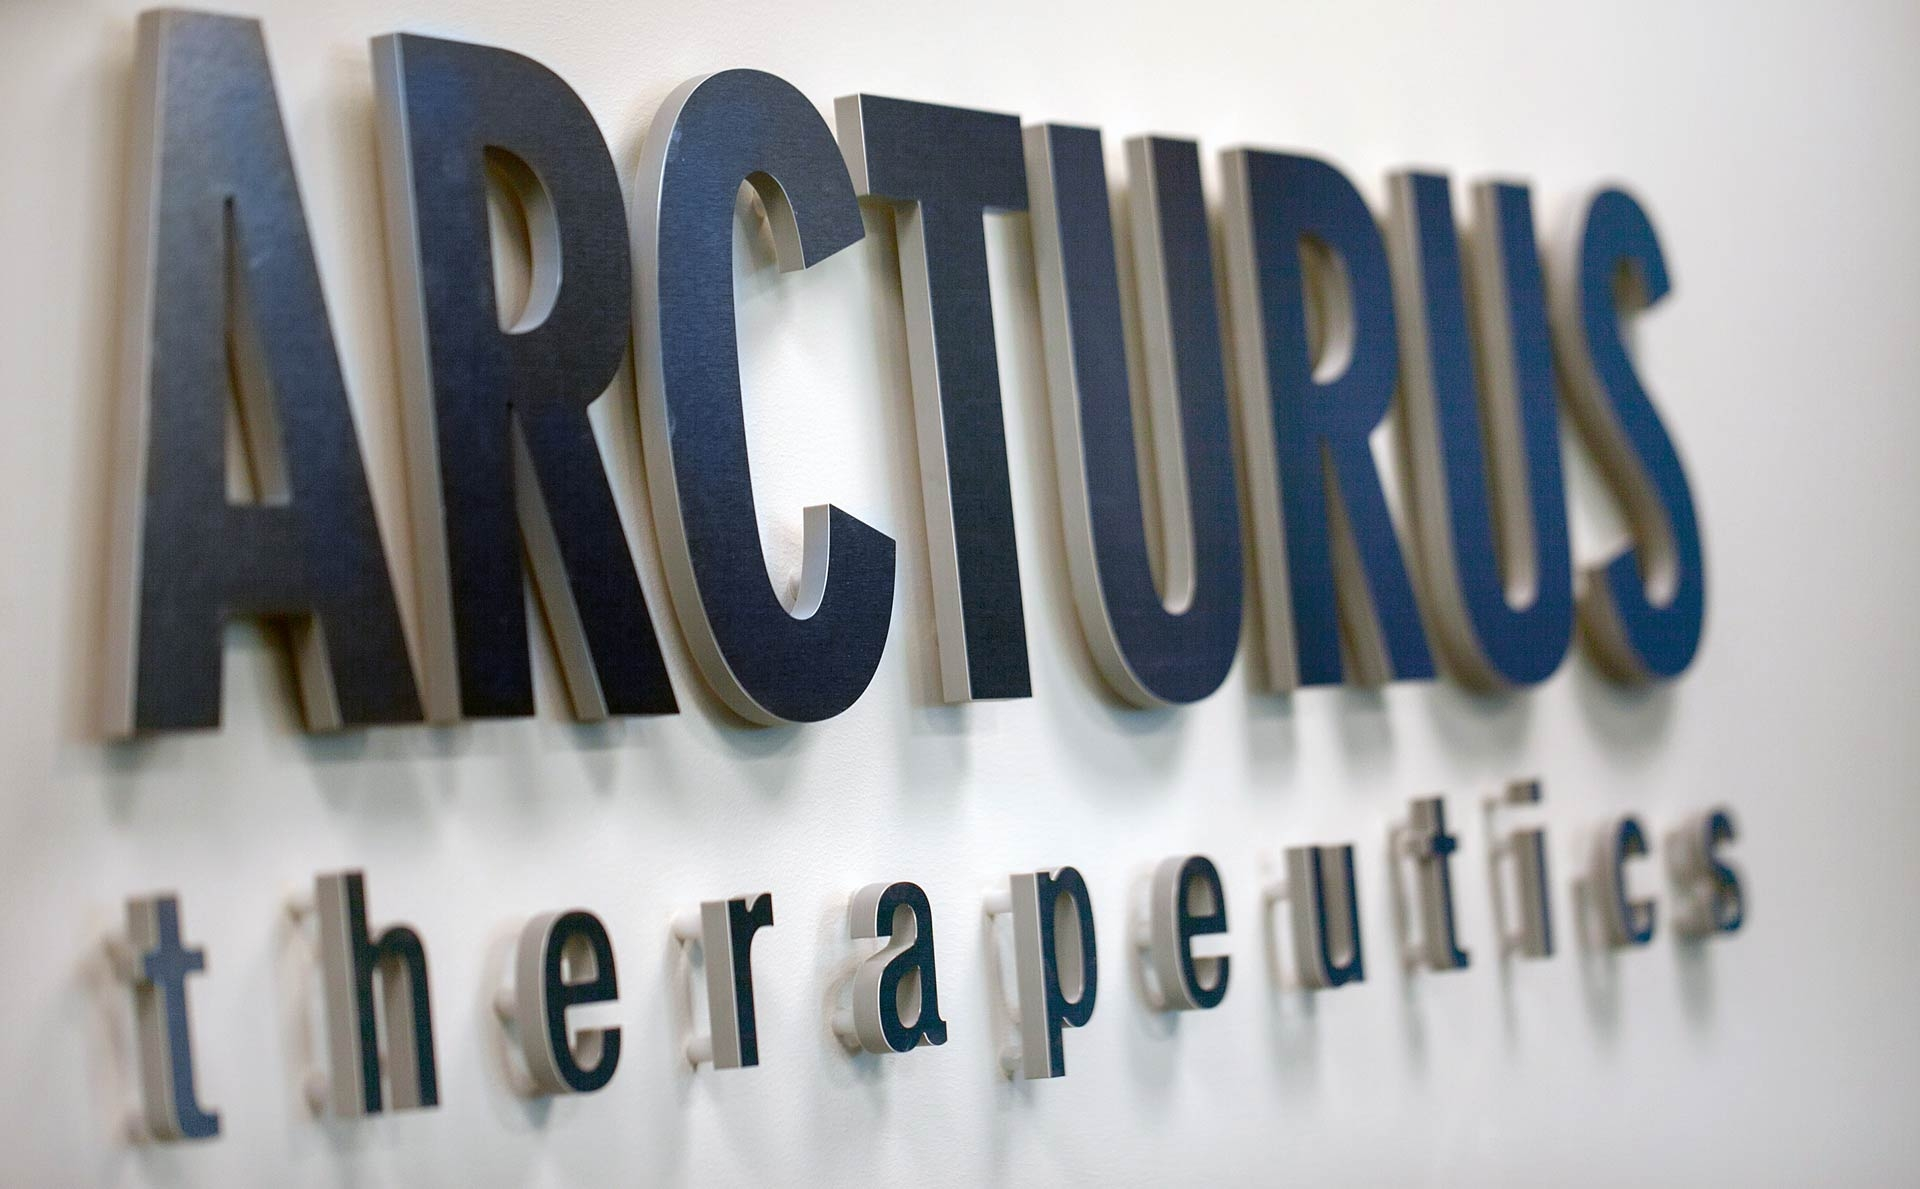 Arcturus Therapeutics ties up with Vingroup for vaccine manufacturing plant in Vietnam